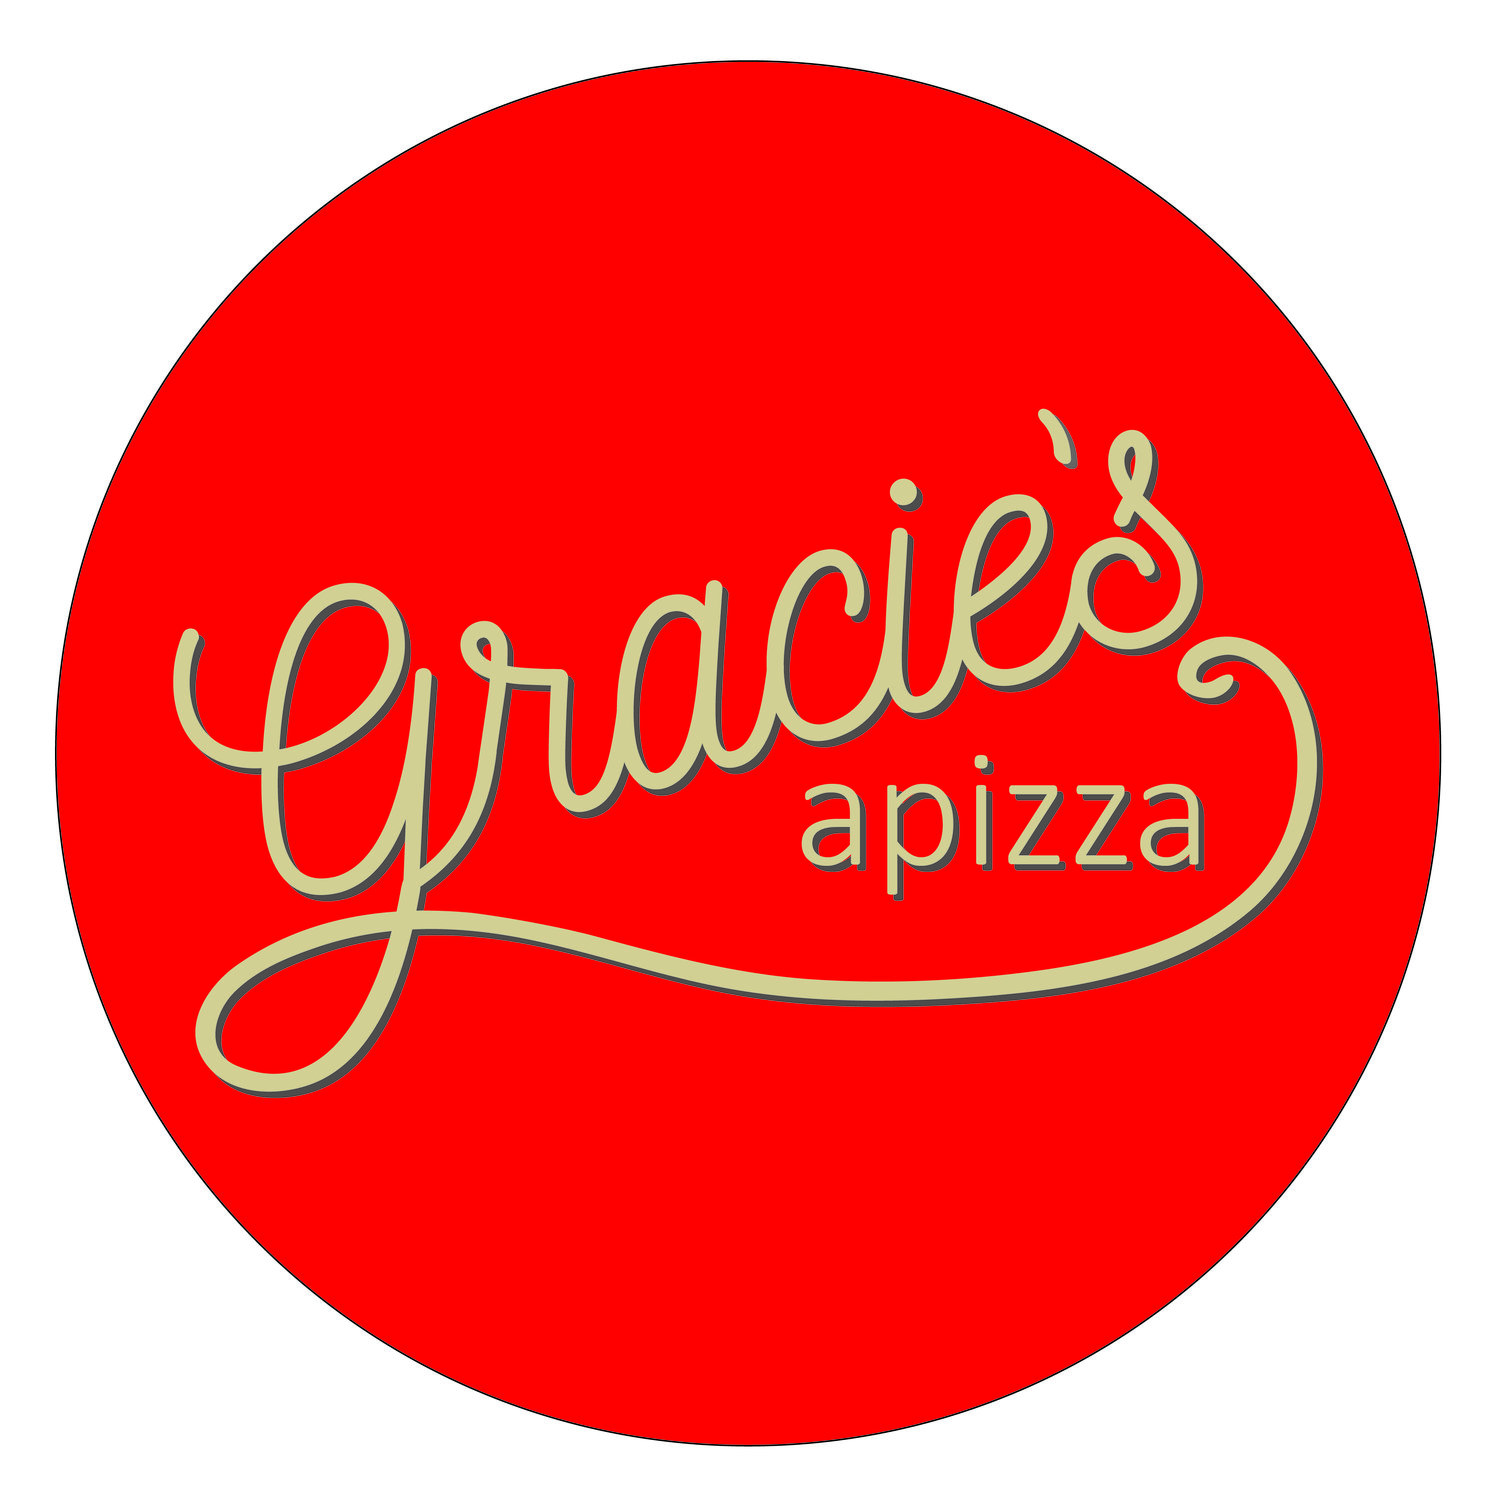 GRACIE'S APIZZA